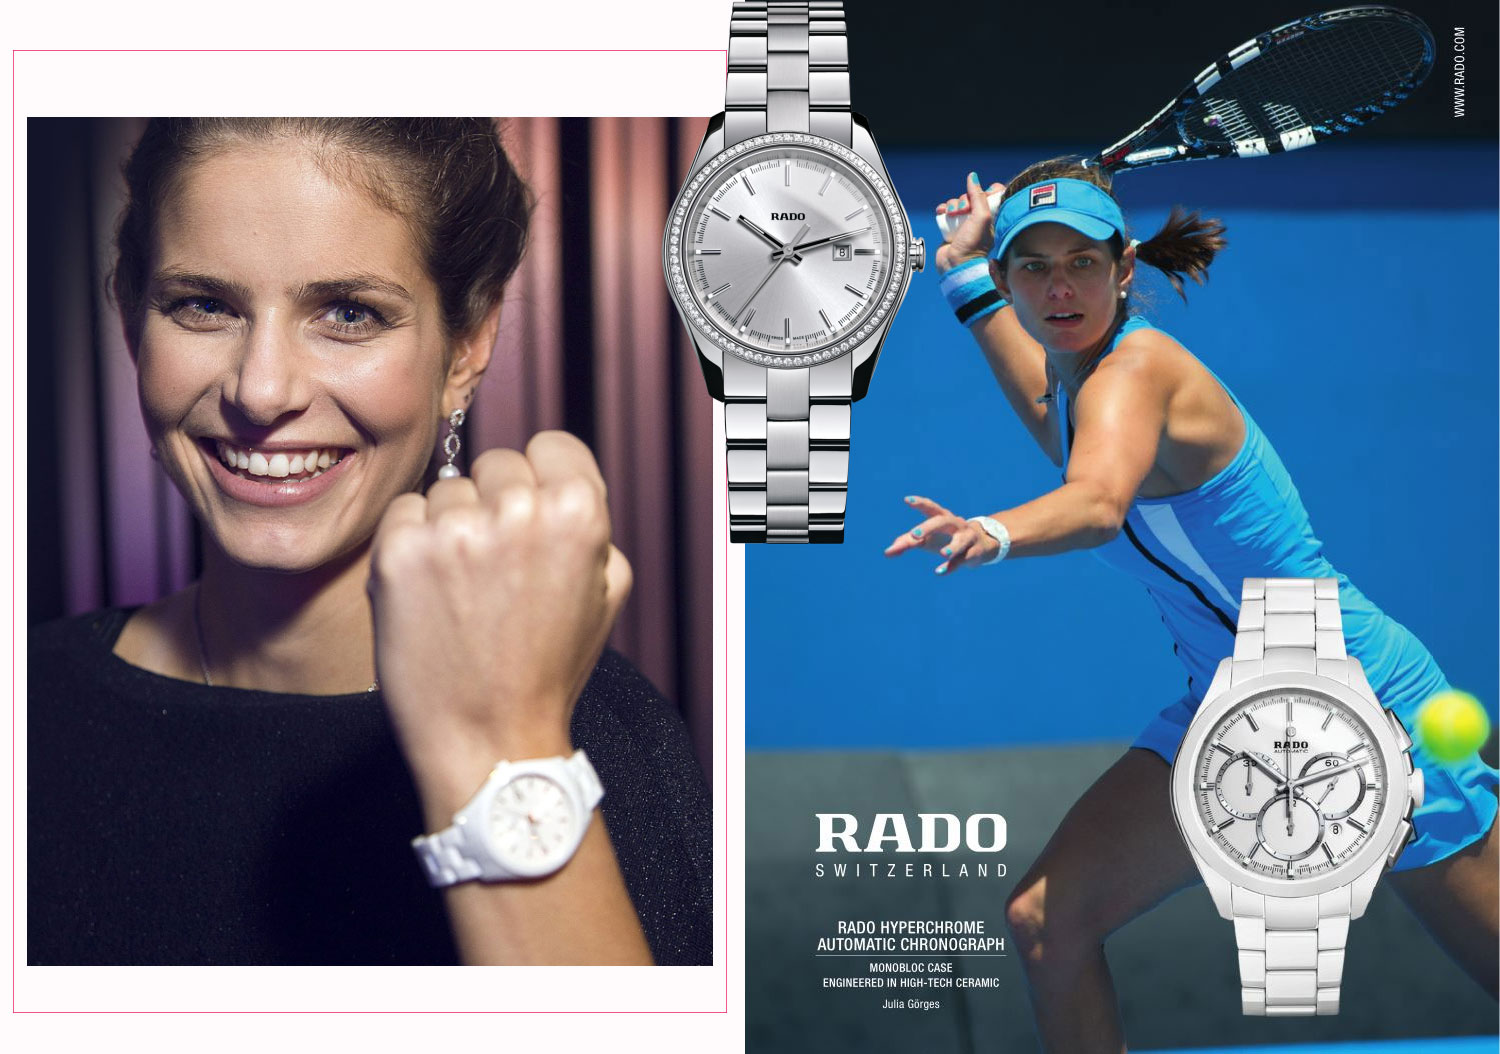 Top Tennis Players And Their Watches